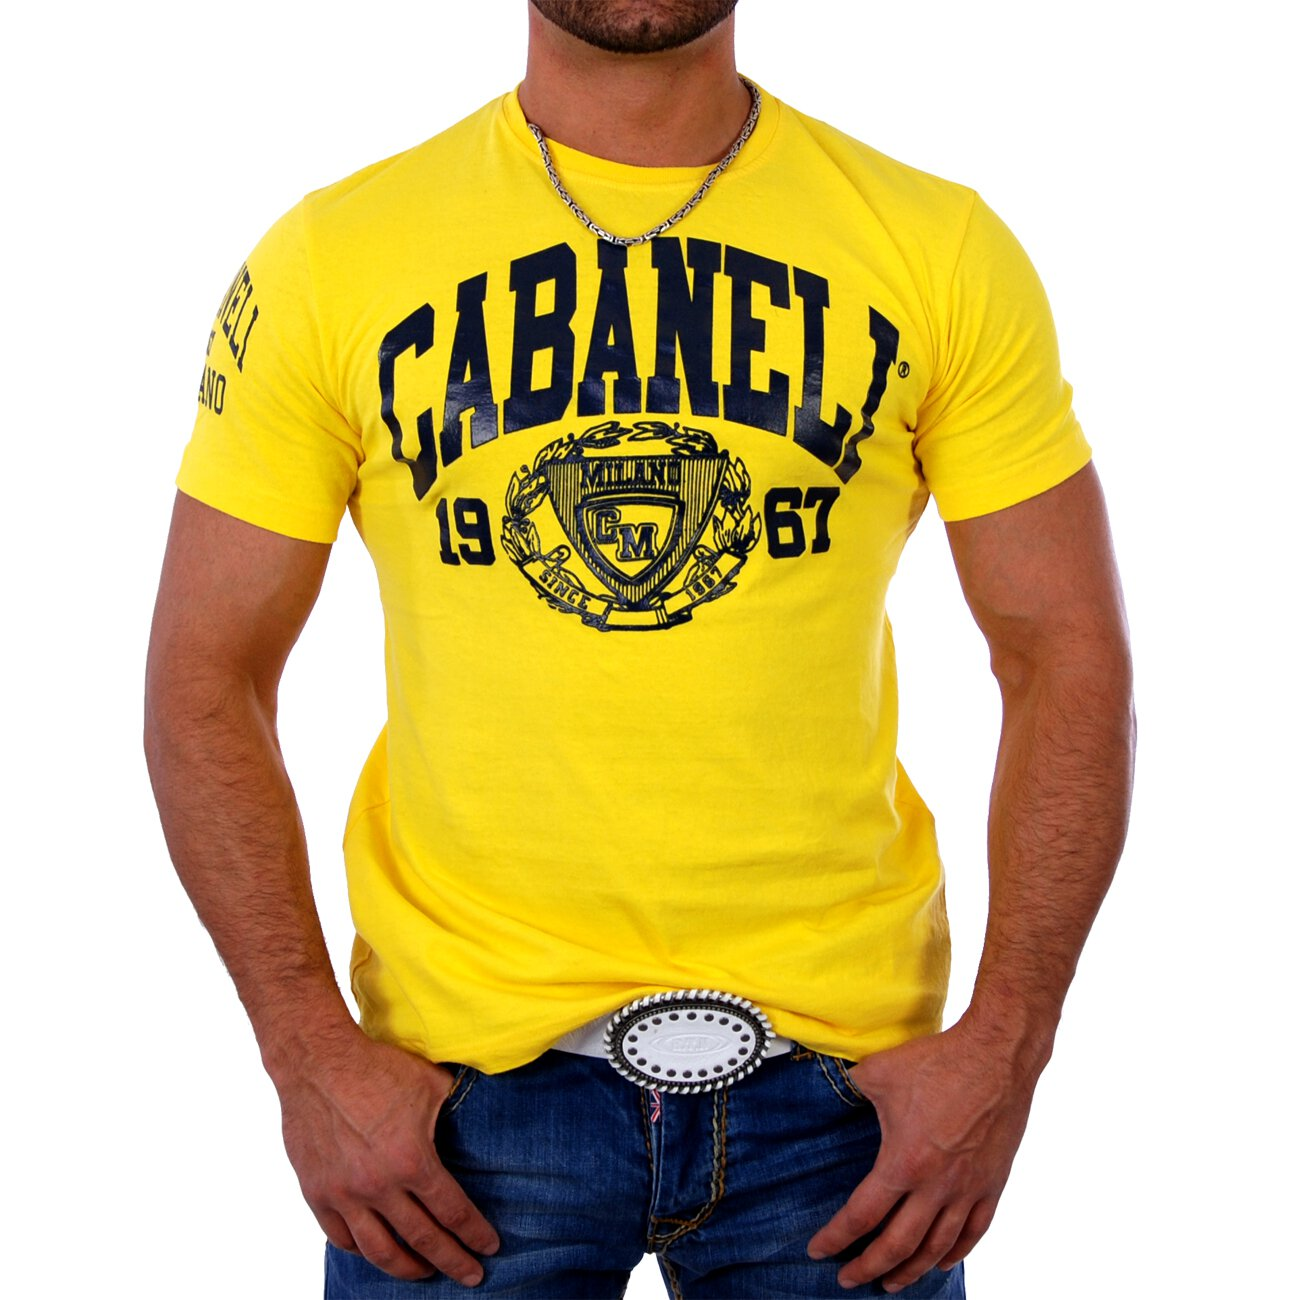 T shirt herren logo print cabaneli ca 05 shirts g nstig for T shirt printing local area